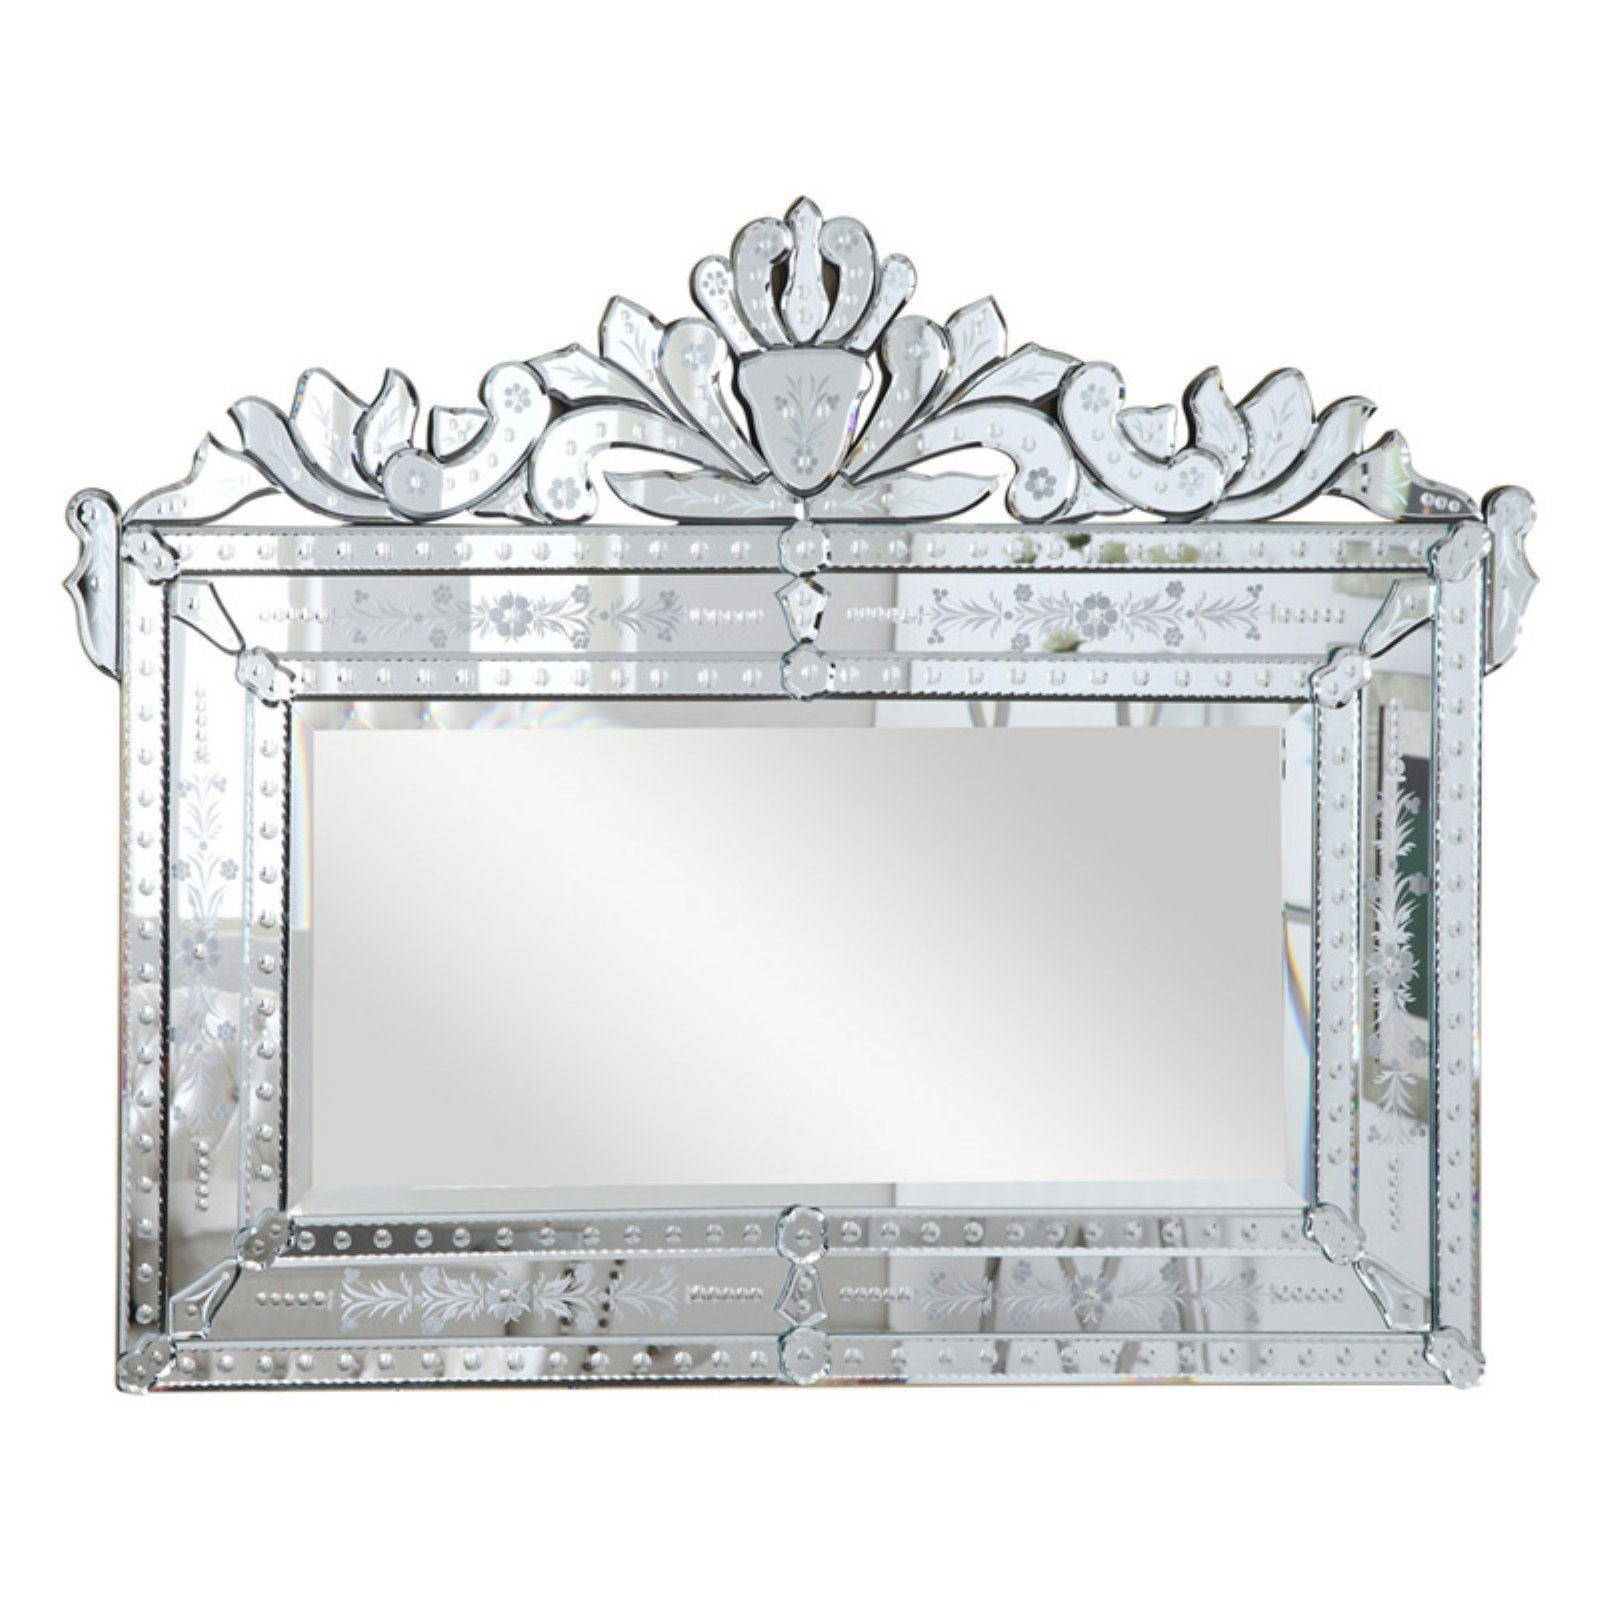 Elegant Furniture & Lighting Venetian Wall Mirror - 42.5W x 32.3H in.